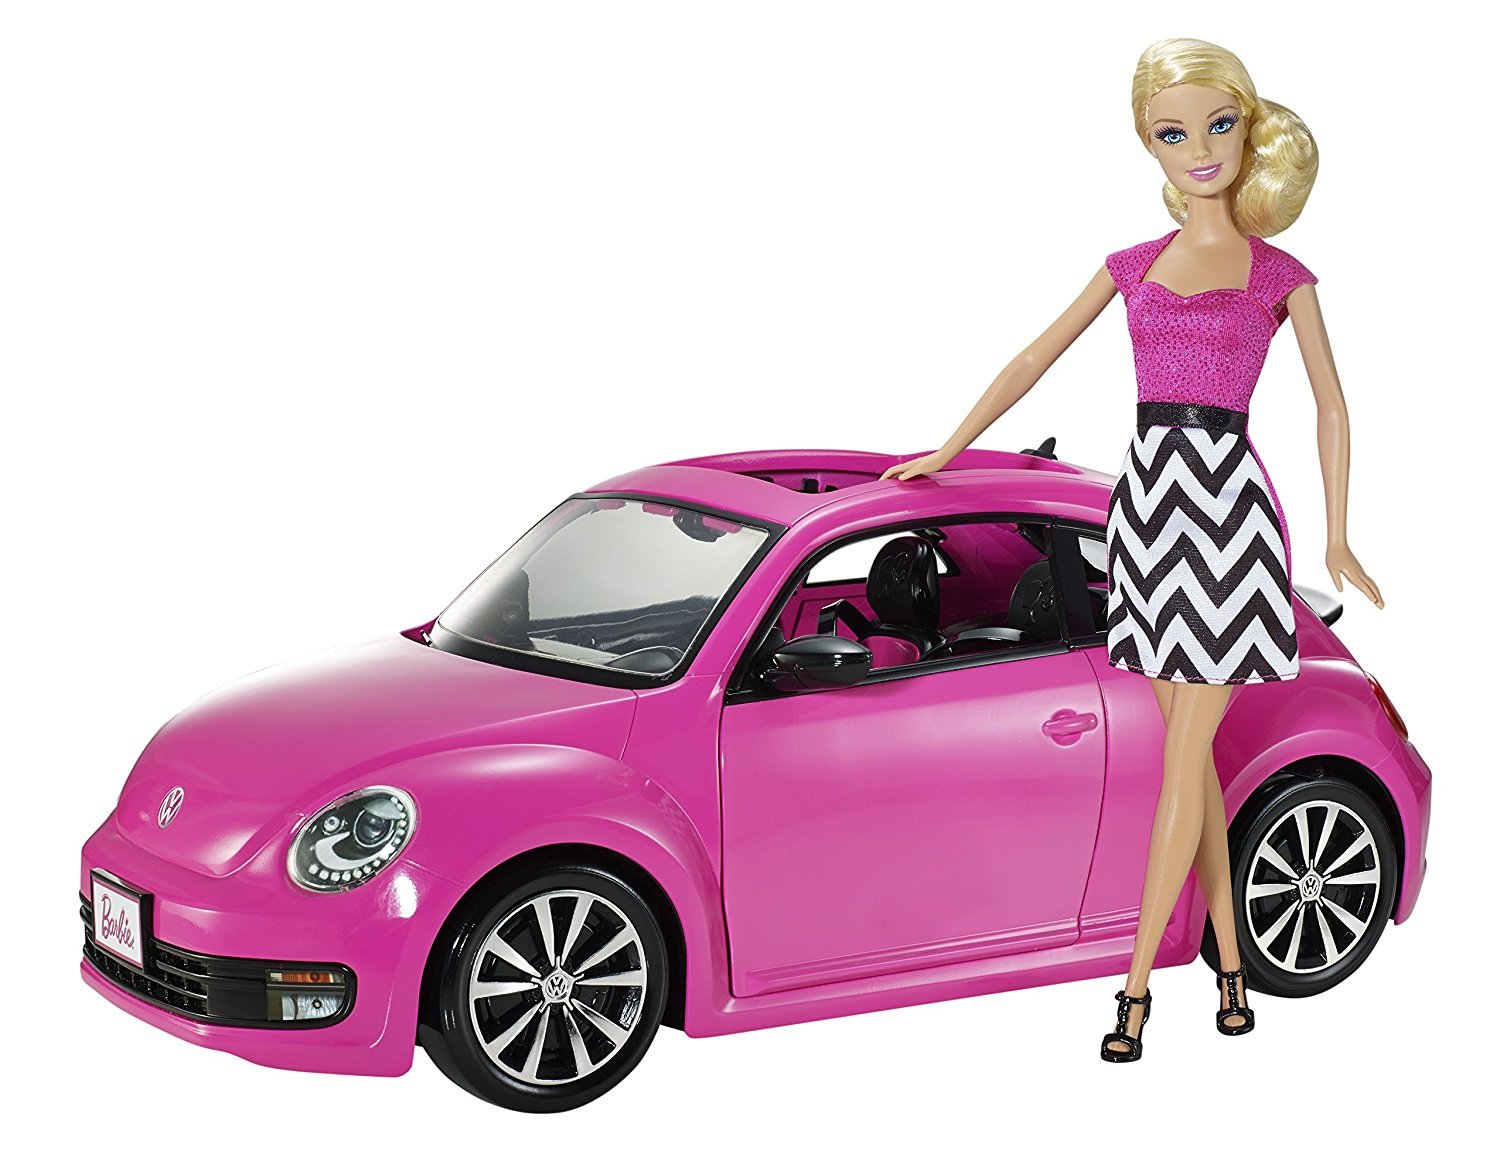 sold cars pink classic hot city volkswagen rod beetle